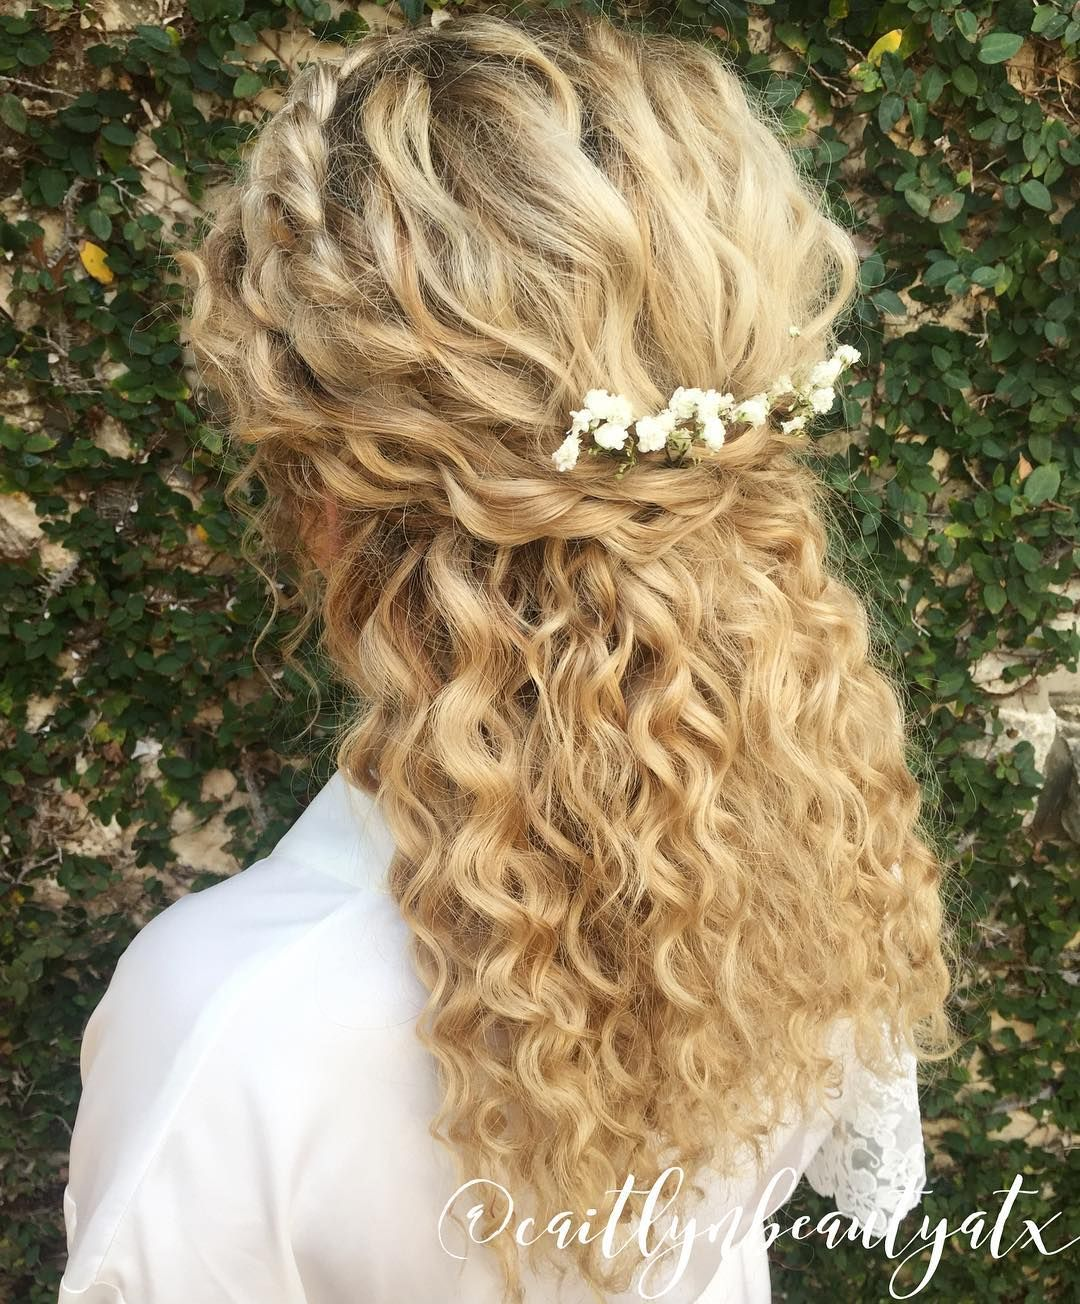 Wedding Hairstyles Down Curly: Natural Curly Bridal Hair. Half Up, Half Down With A Braid